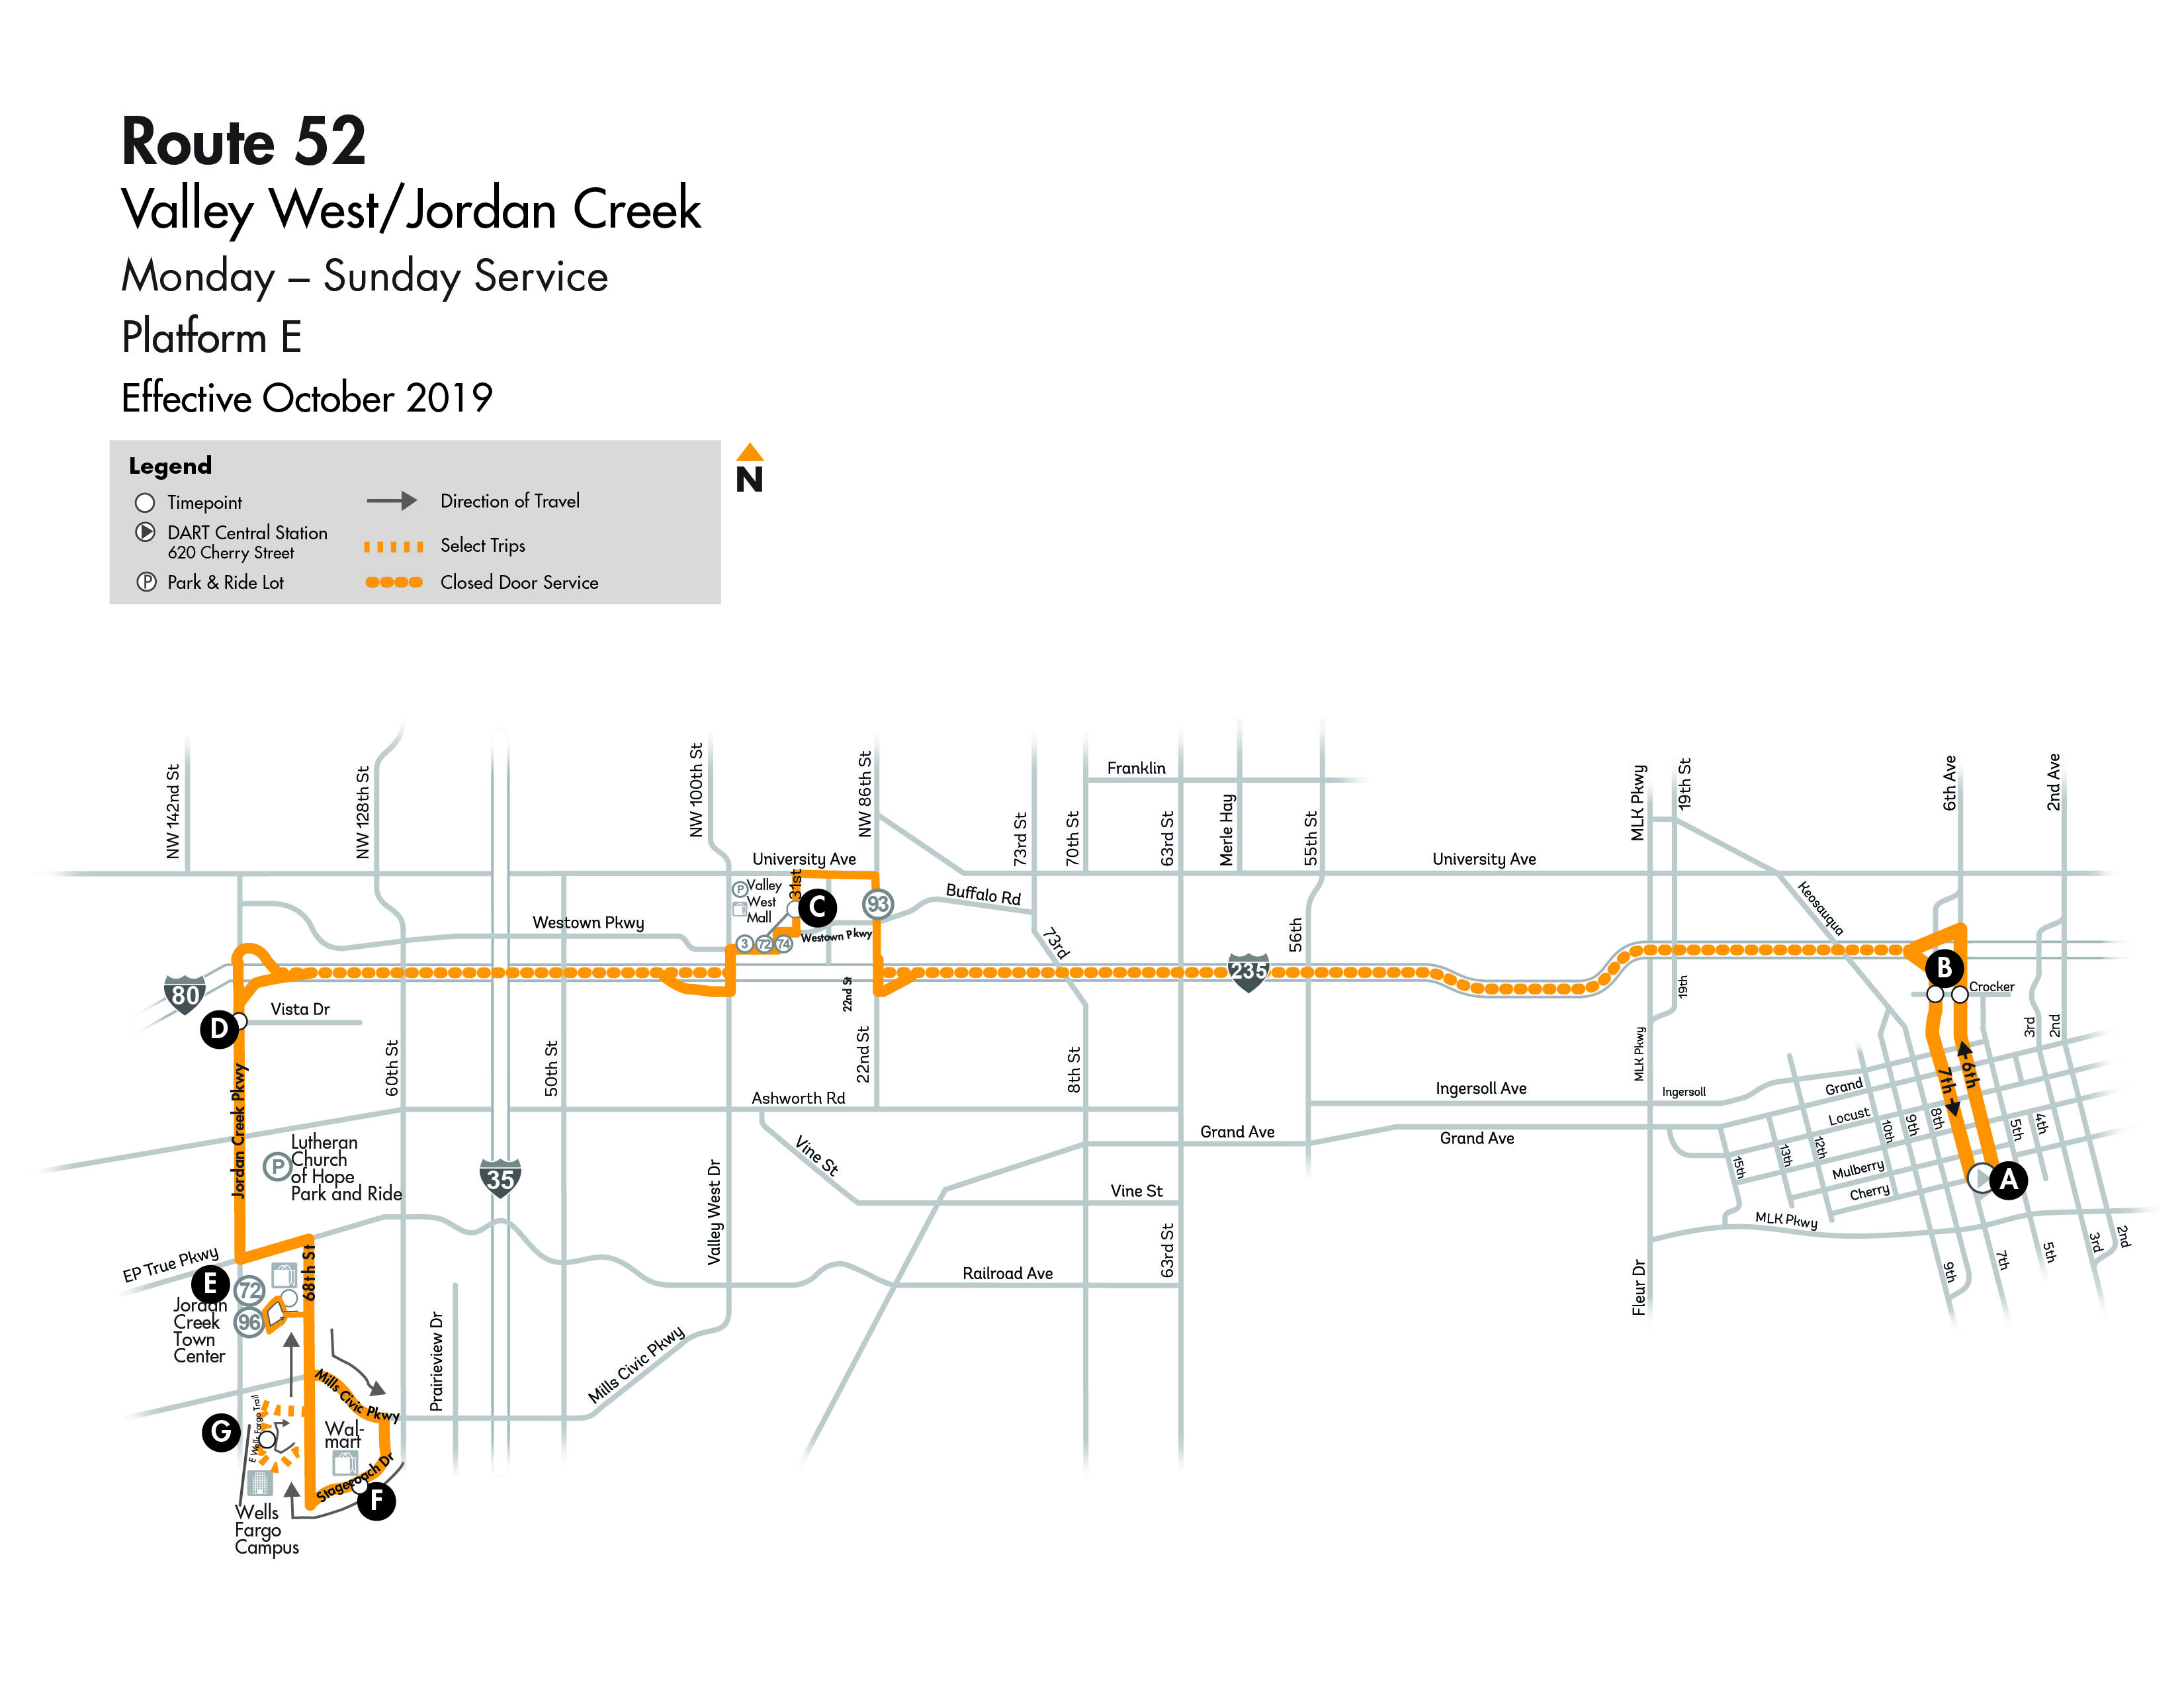 DART Local Route 52 - Valley West/Jordan Creek Crosstown Map